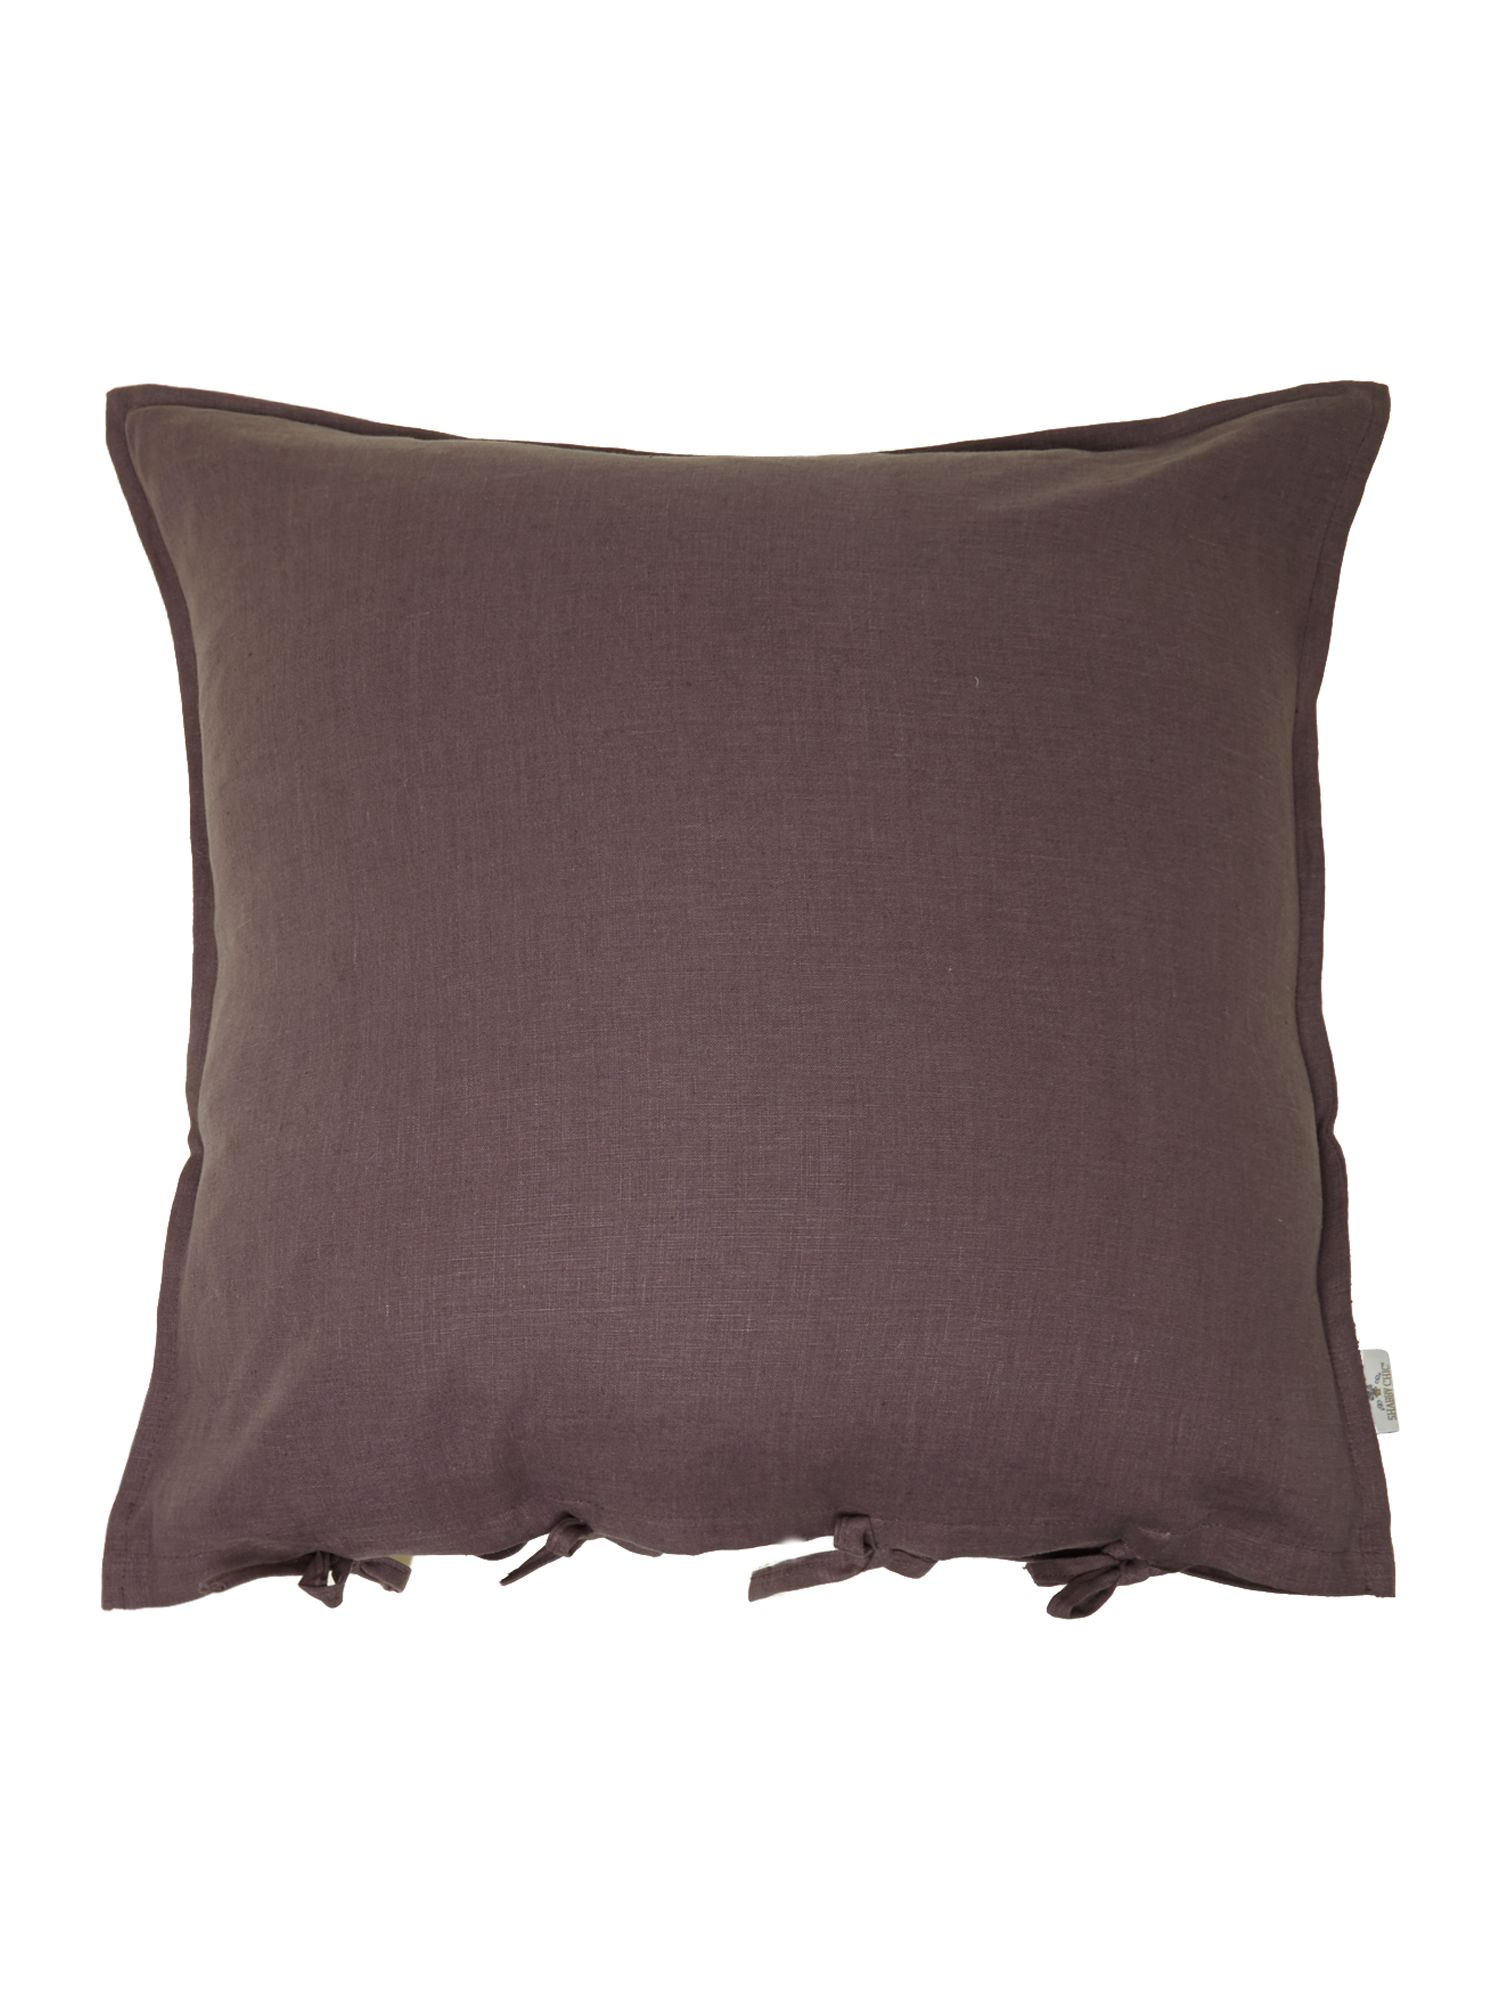 Plum oversized linen cushion